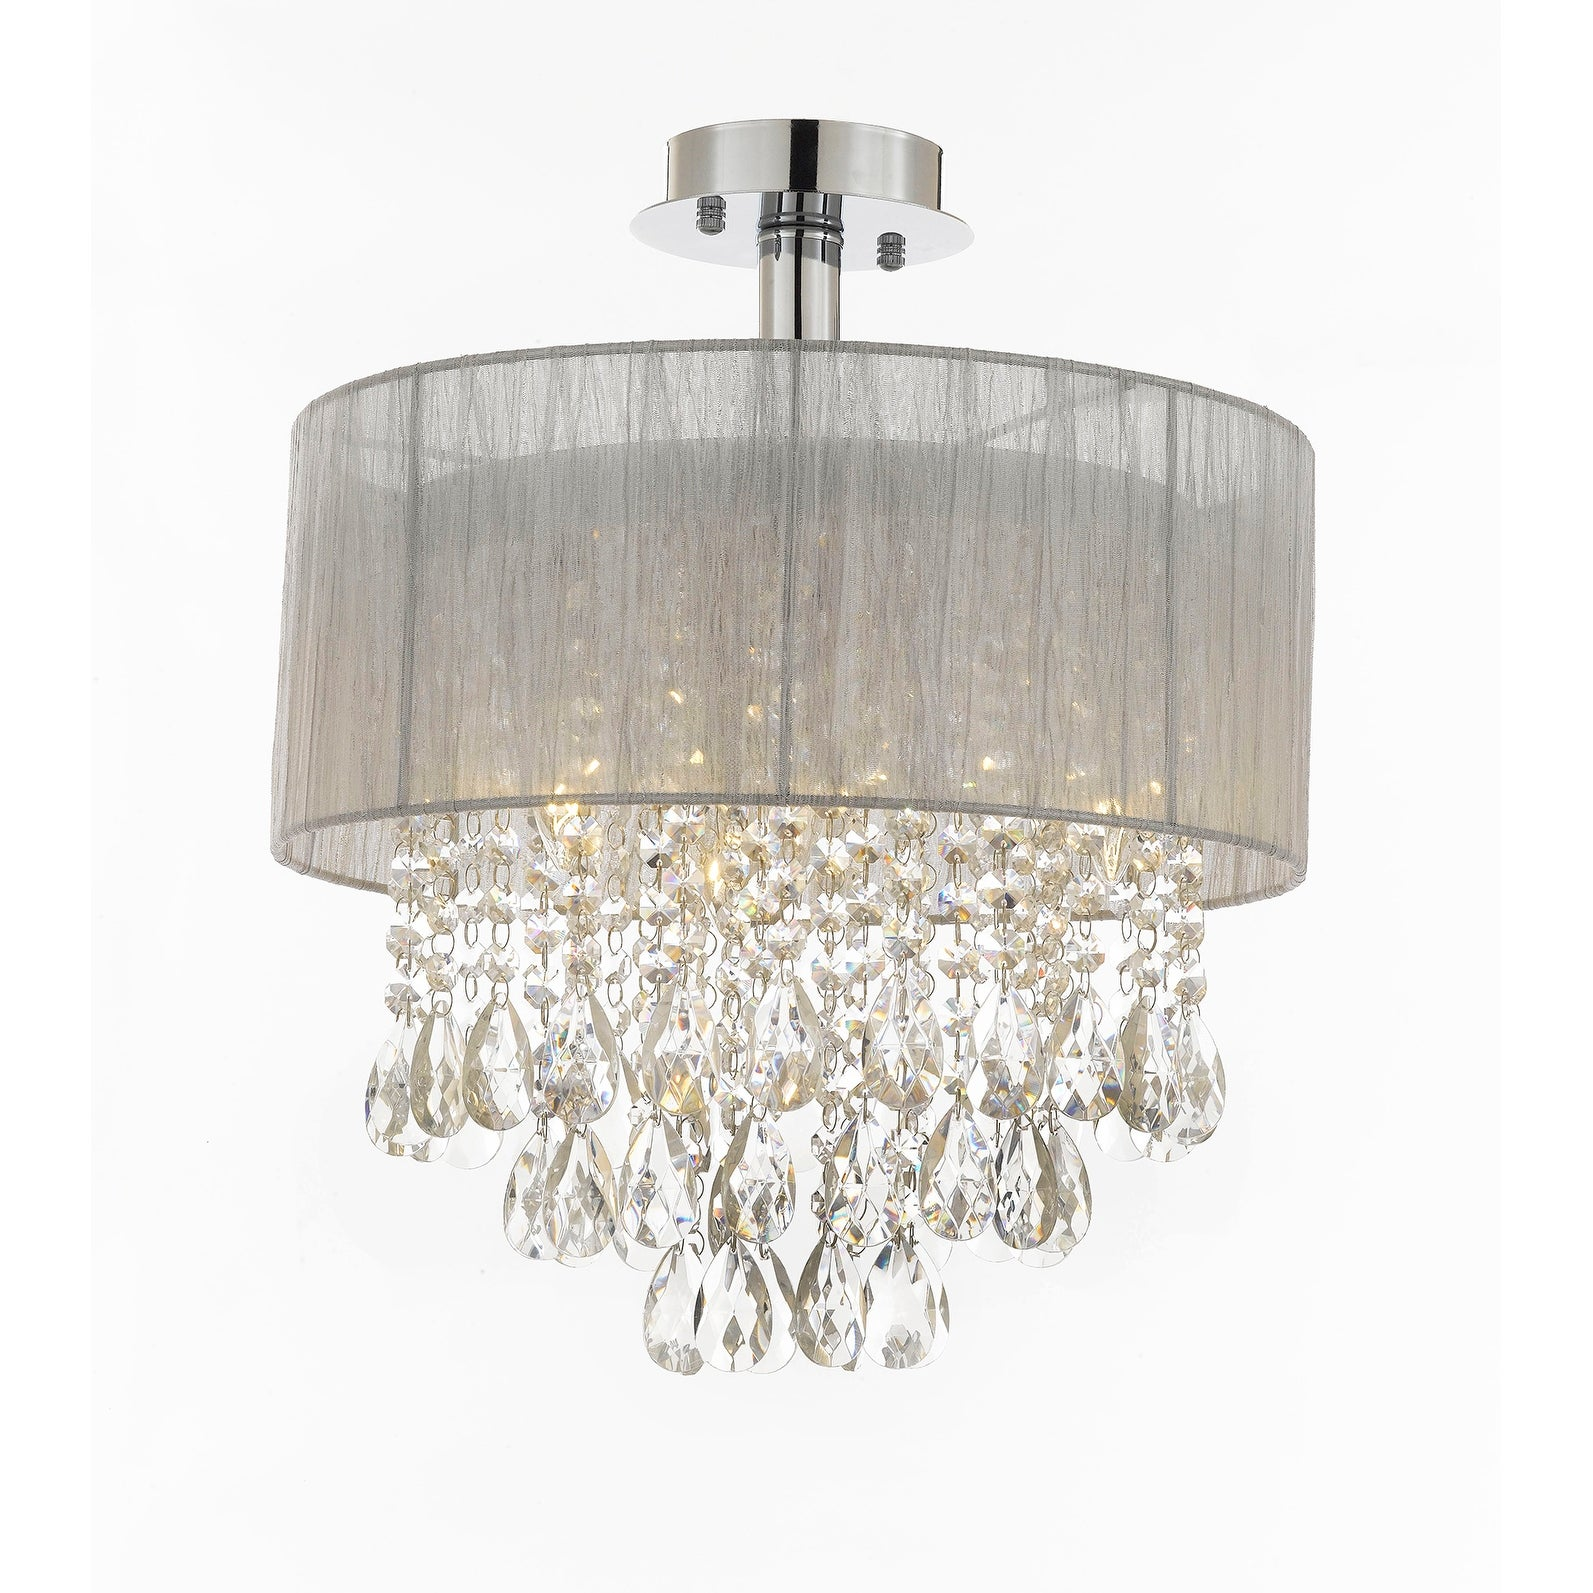 Glamorous Two Tier Crystal Crown Ceiling Light